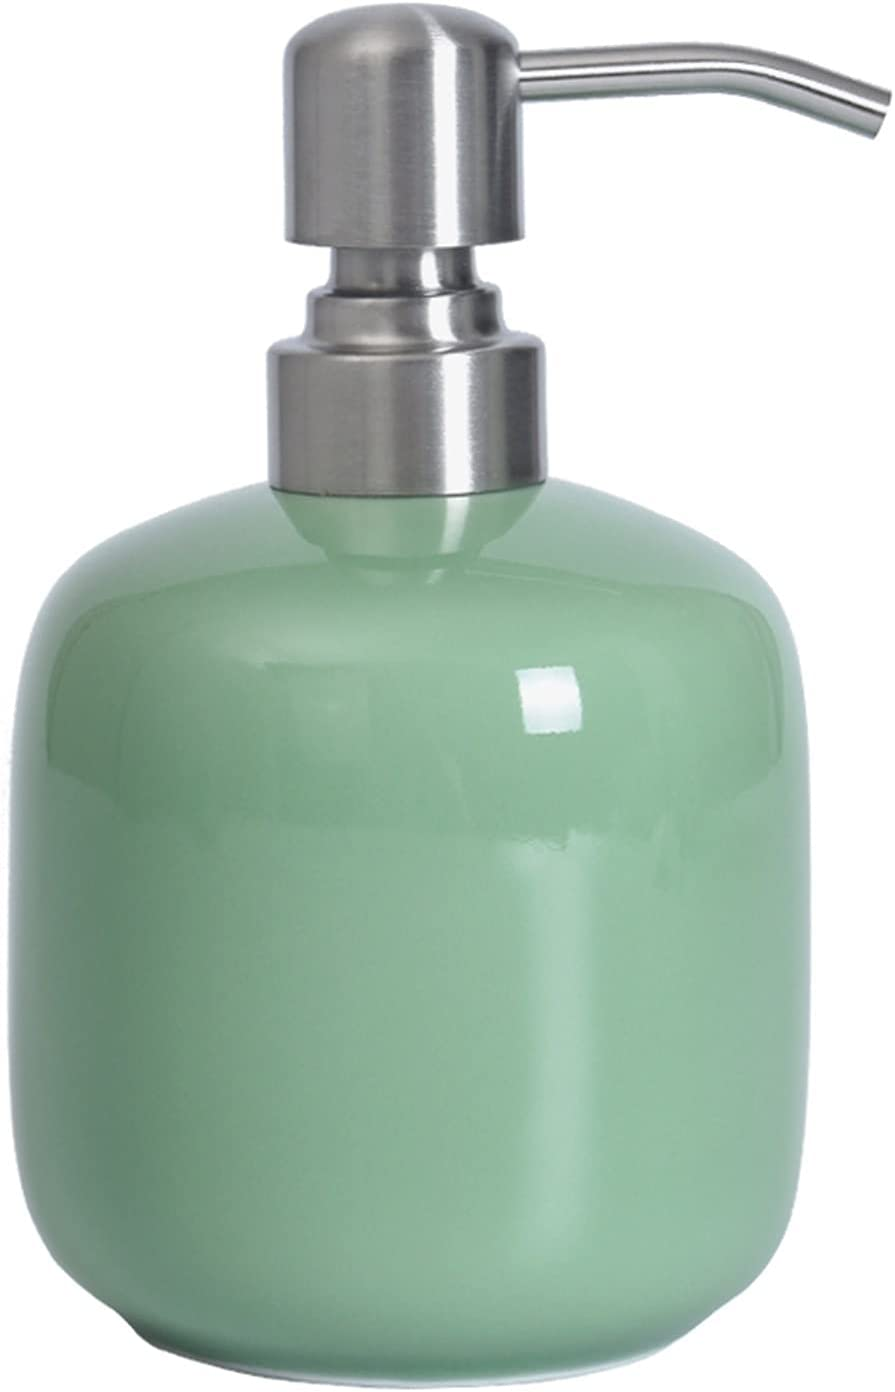 Soap Dispenser All items in the store Bottle Lotion Chinese Style Award-winning store Handmade Ce